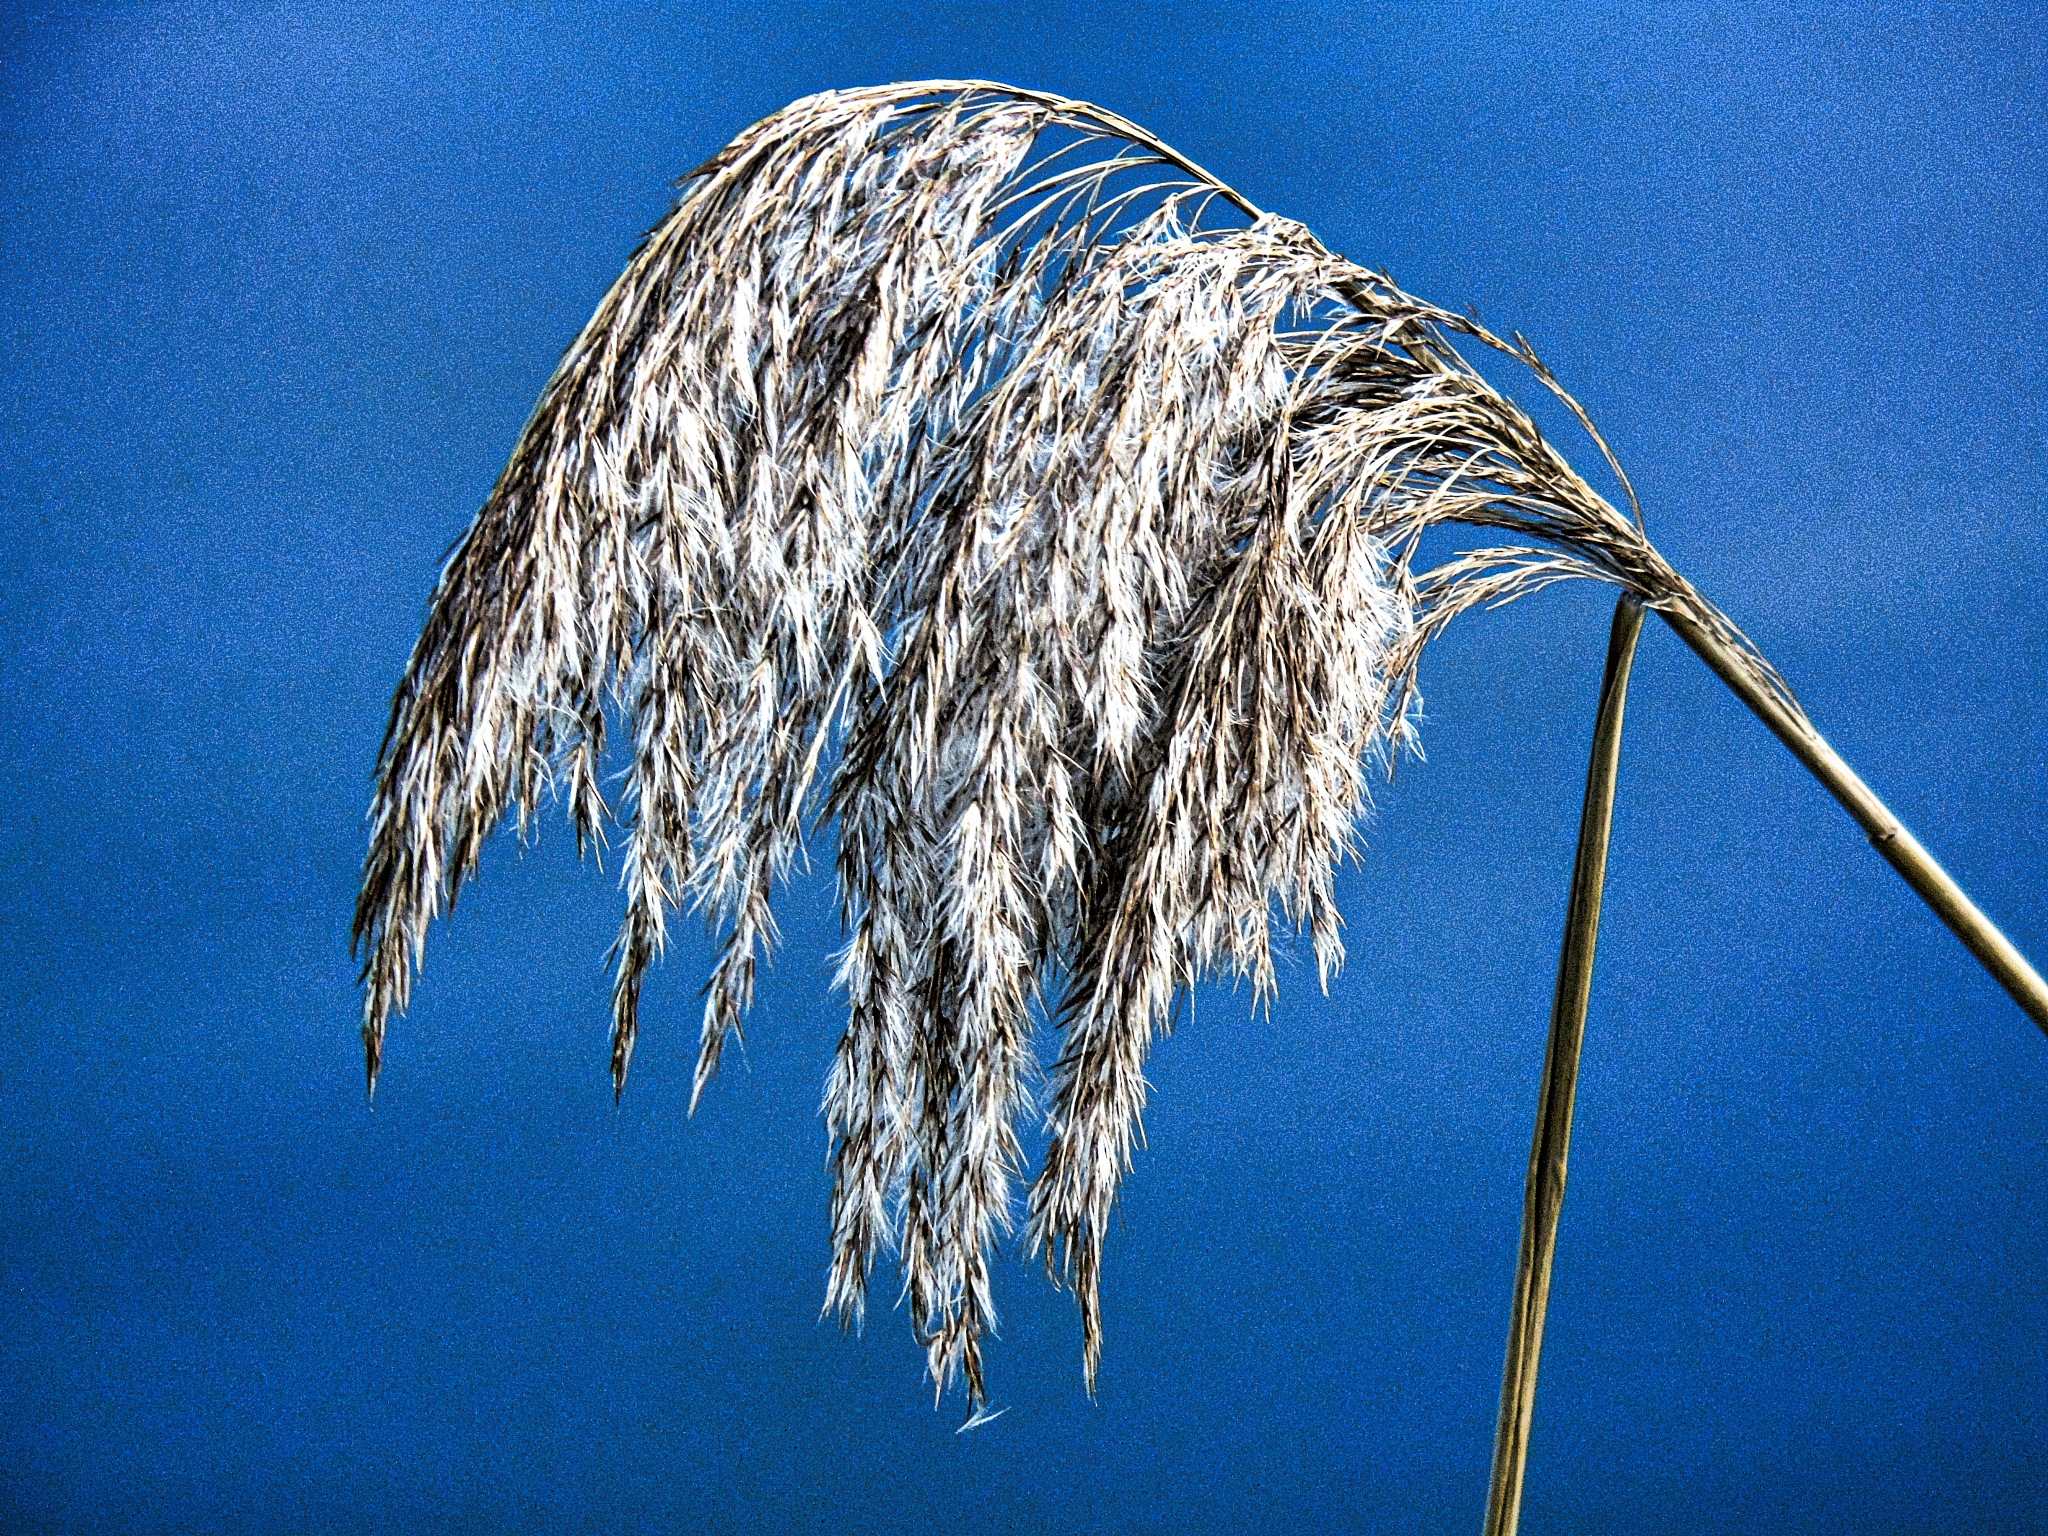 Natures Feather duster by David Wagner